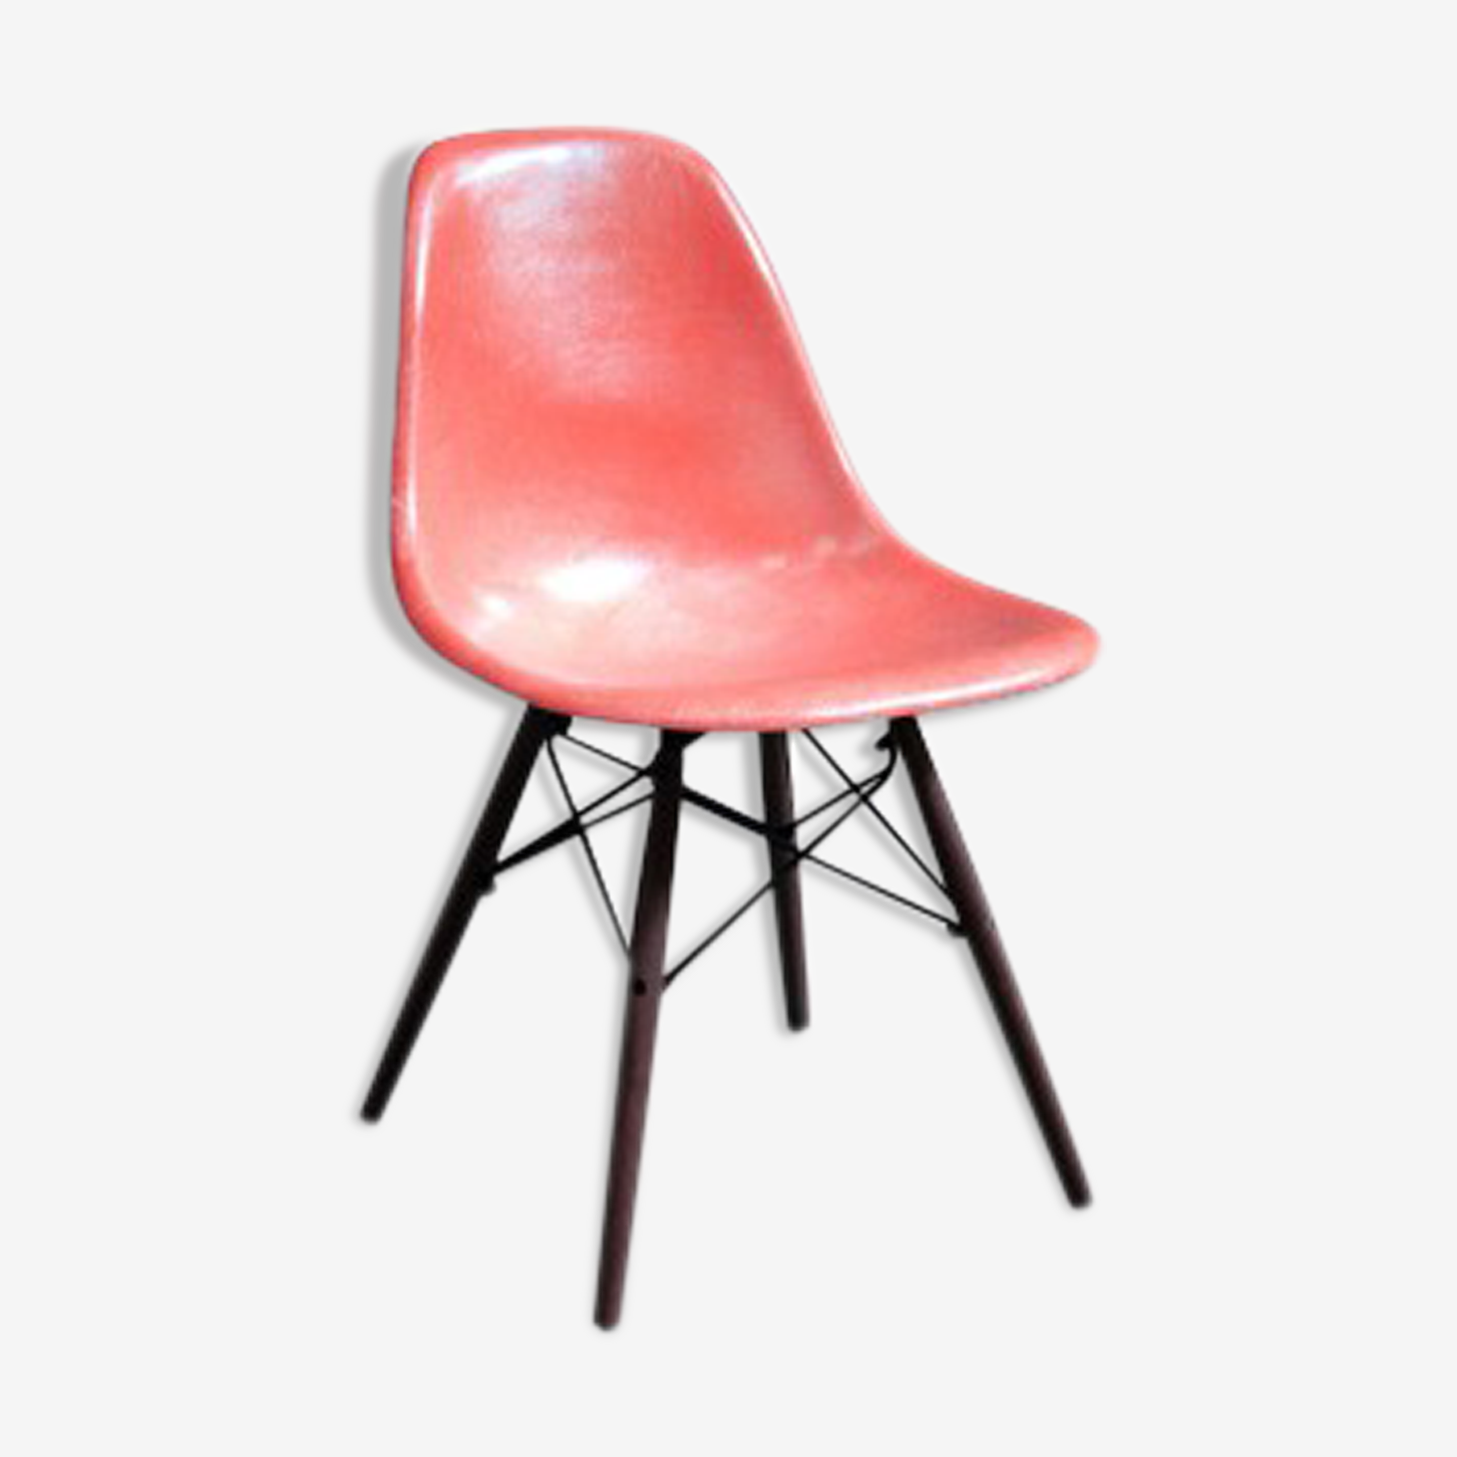 Chair Eames DSW coral Herman Miller 1970 edition